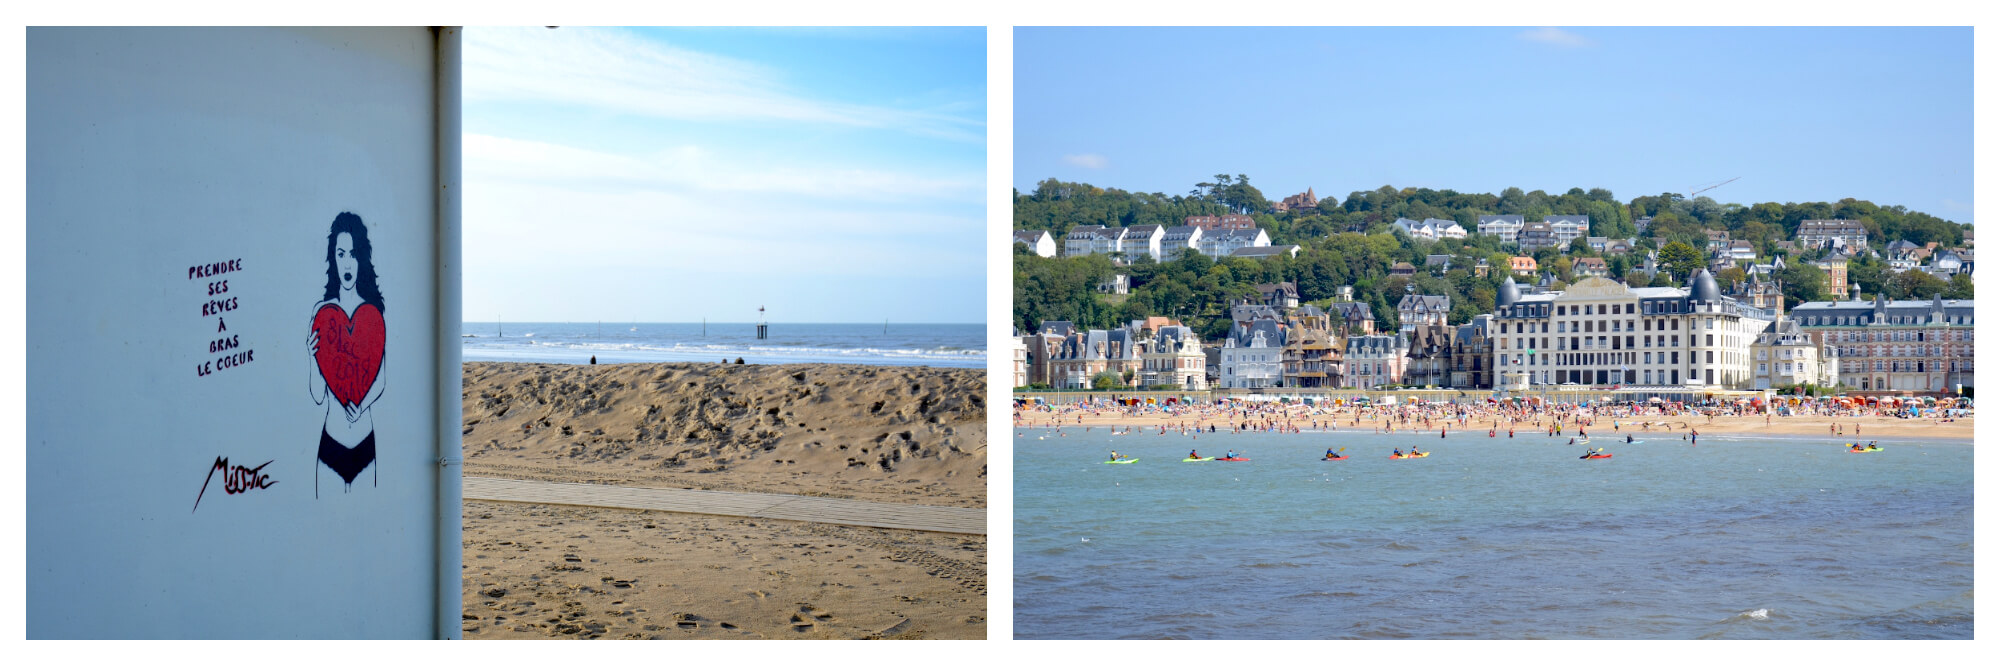 On left: Street art by the renowned Miss.Tic graces the wall of a building on the beach of Trouville-sur-Mer. The artist's works can be found hiding around the town. On right: A view of the beach from the sea in Trouville-sur-Mer, where beachgoers dot the shore on a clear, sunny day.